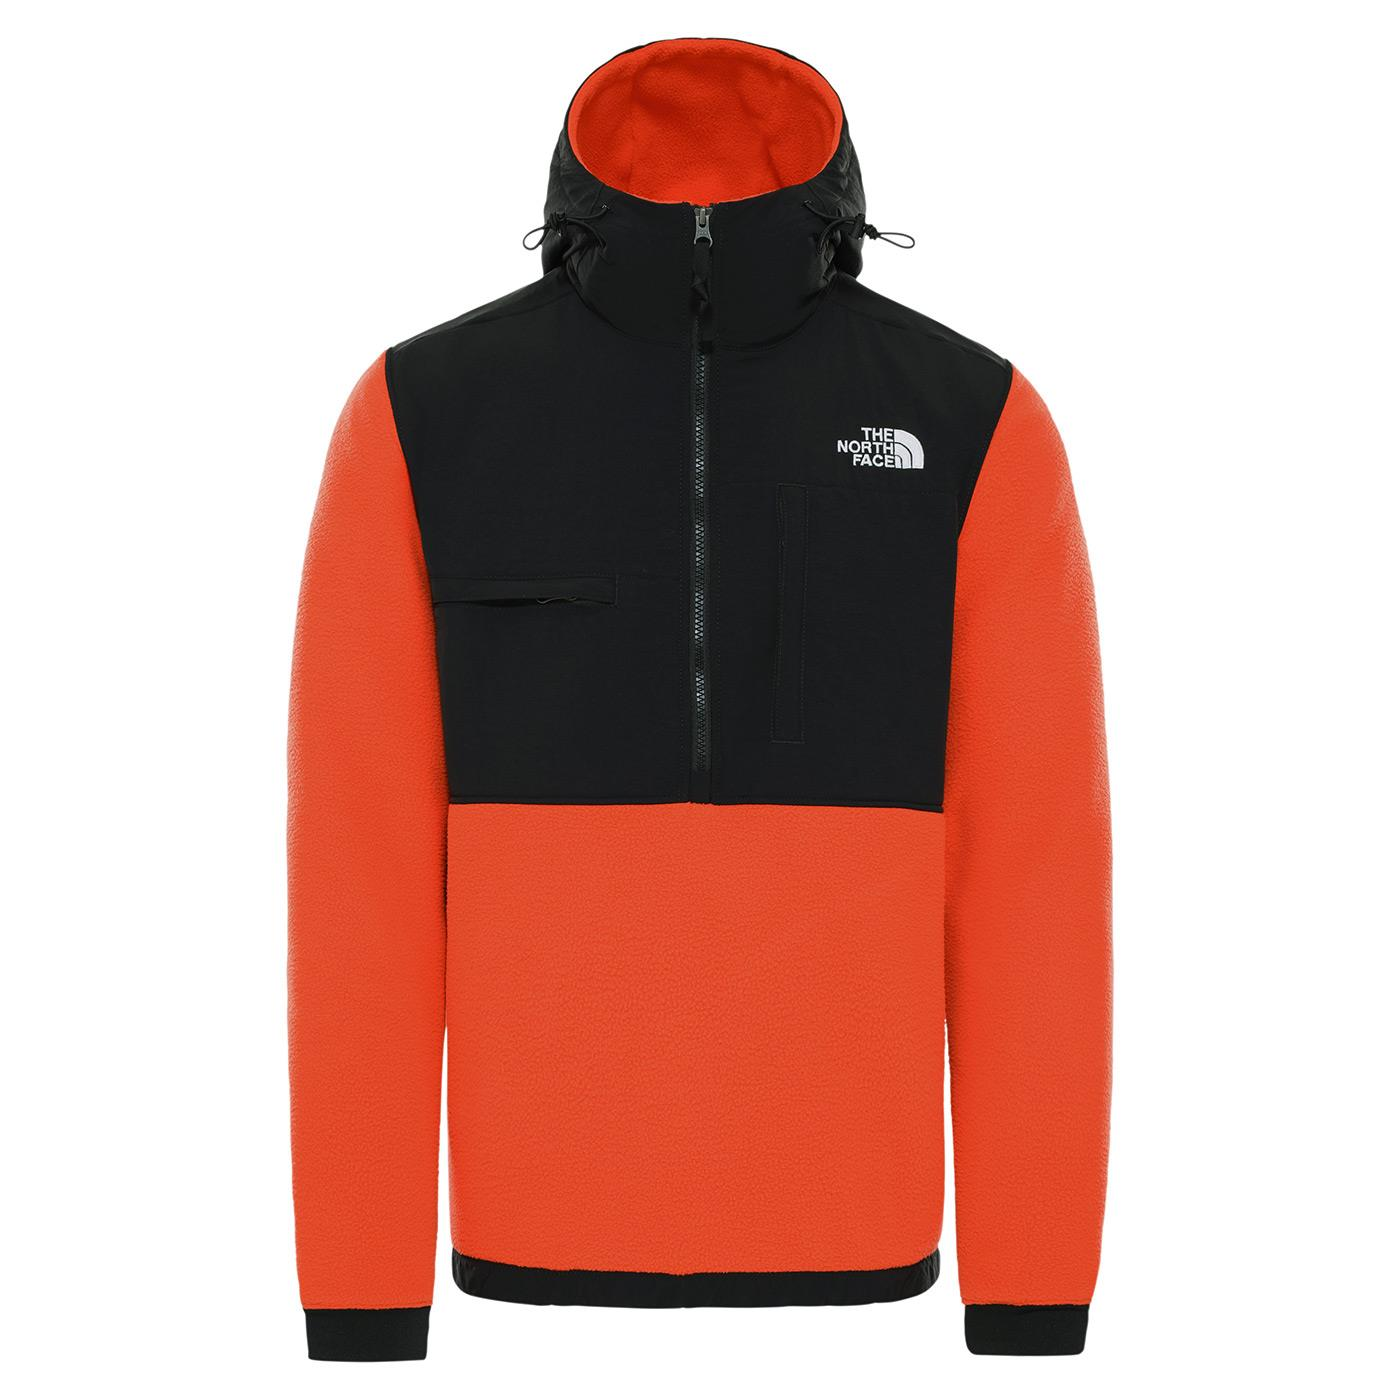 The Northface DENALI 2 ANORAK NF0A4QYNR151